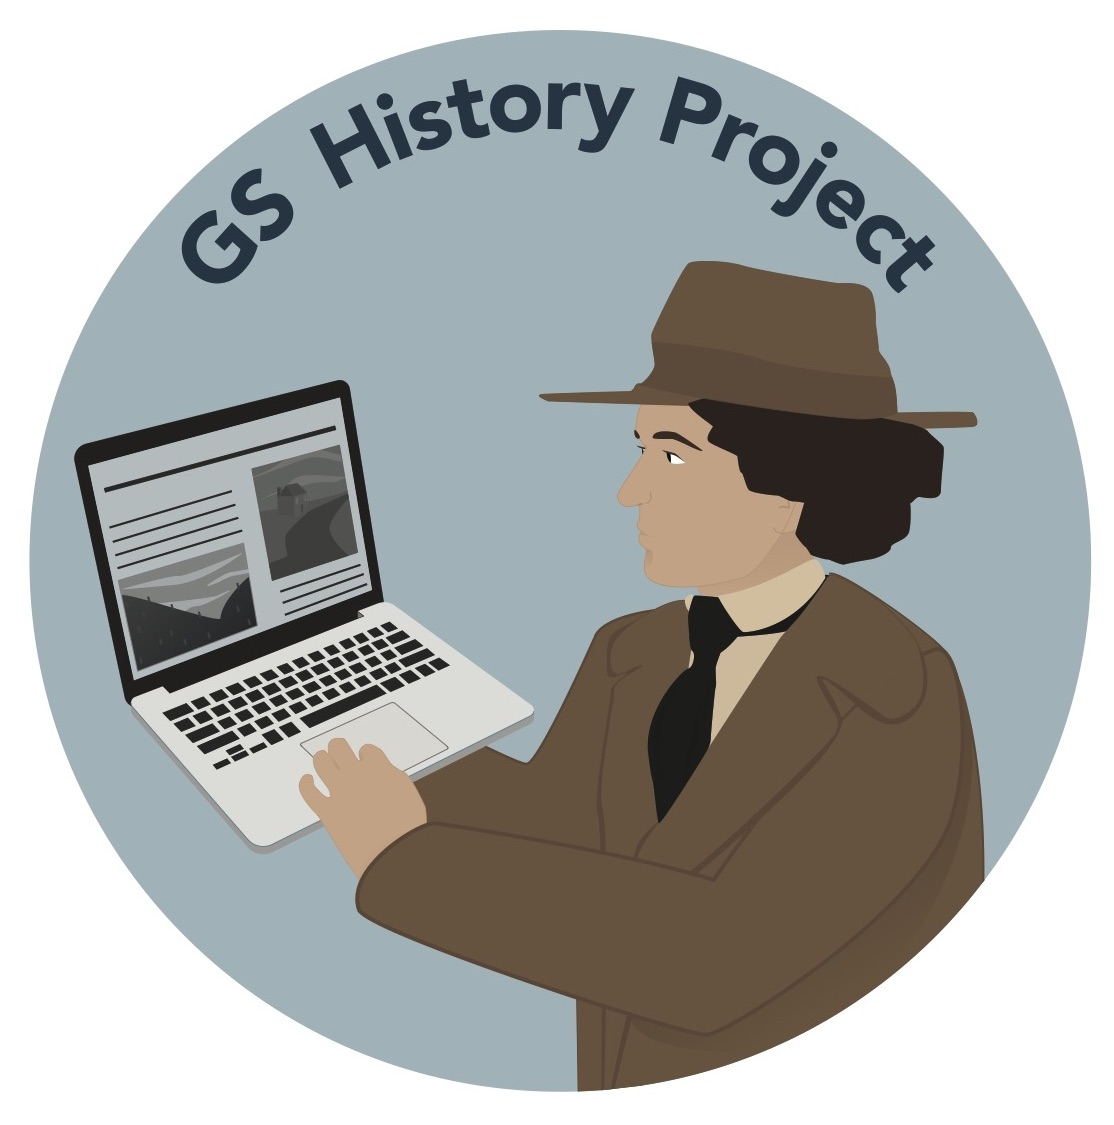 gs history project1